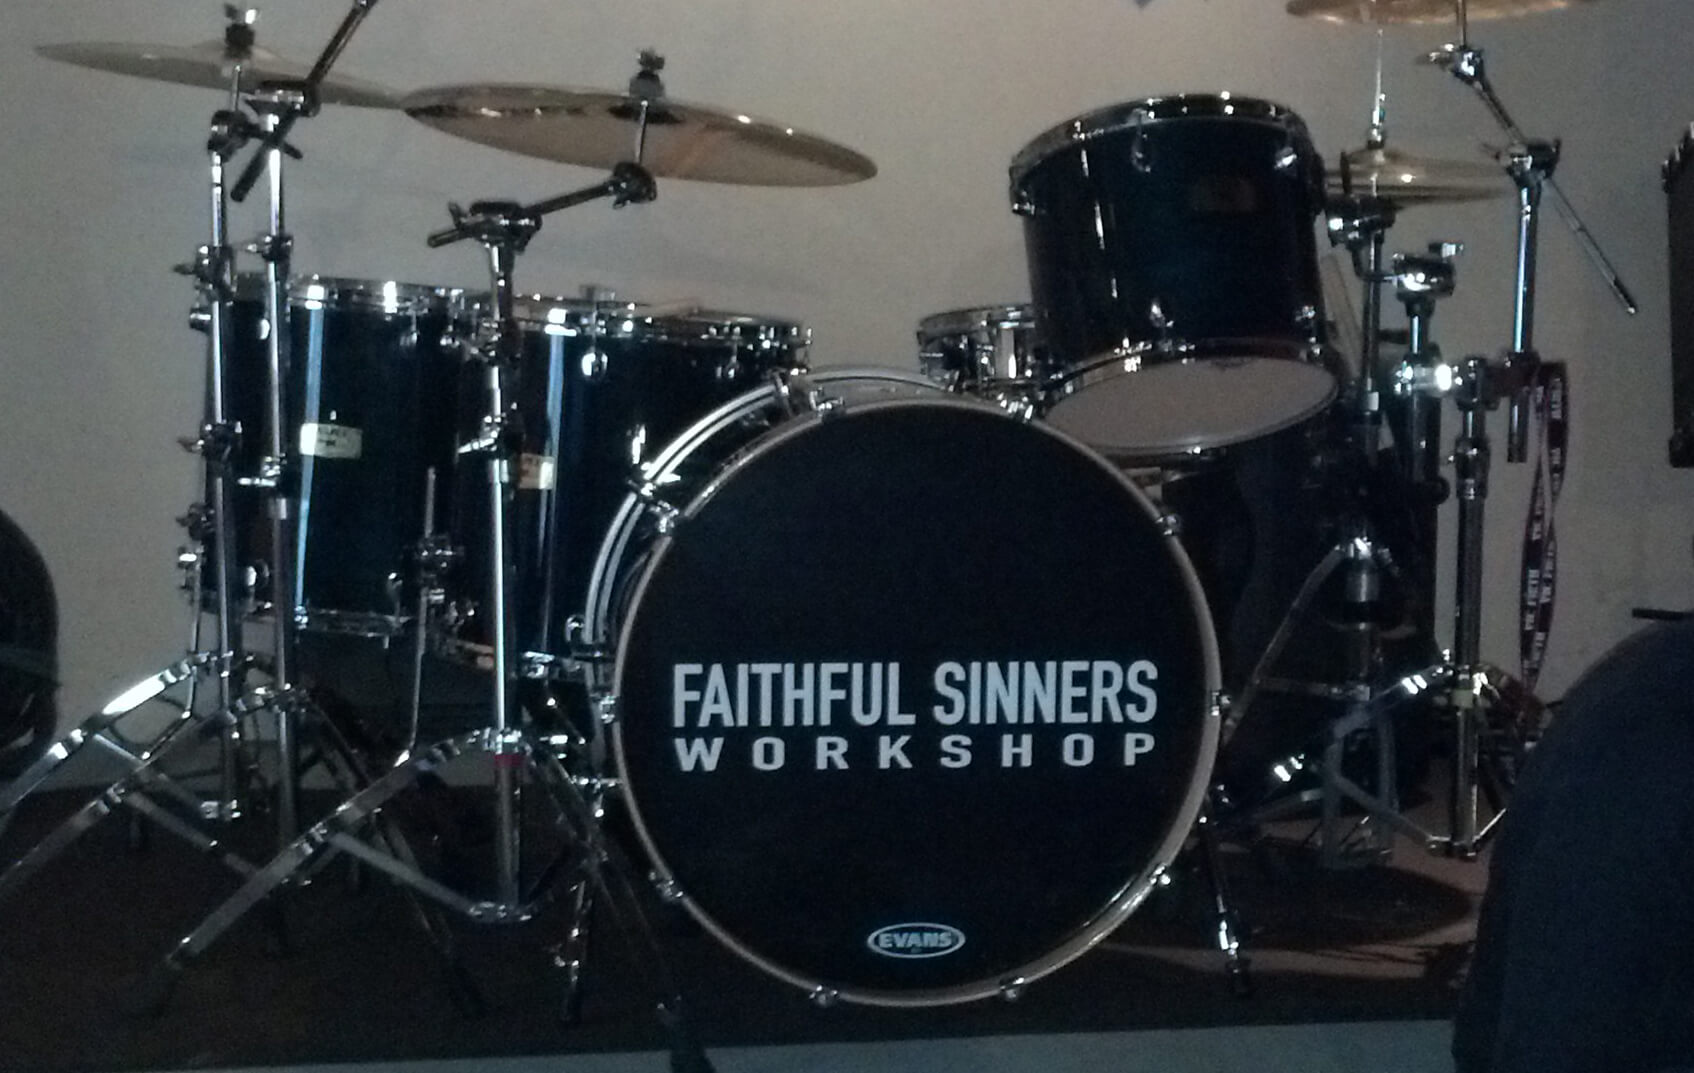 Faithful Sinners Workshop, drum decal, kick drum decals, drum stickers, custom, great prices, die-cut, die cut vinyl decals, music band, promotion